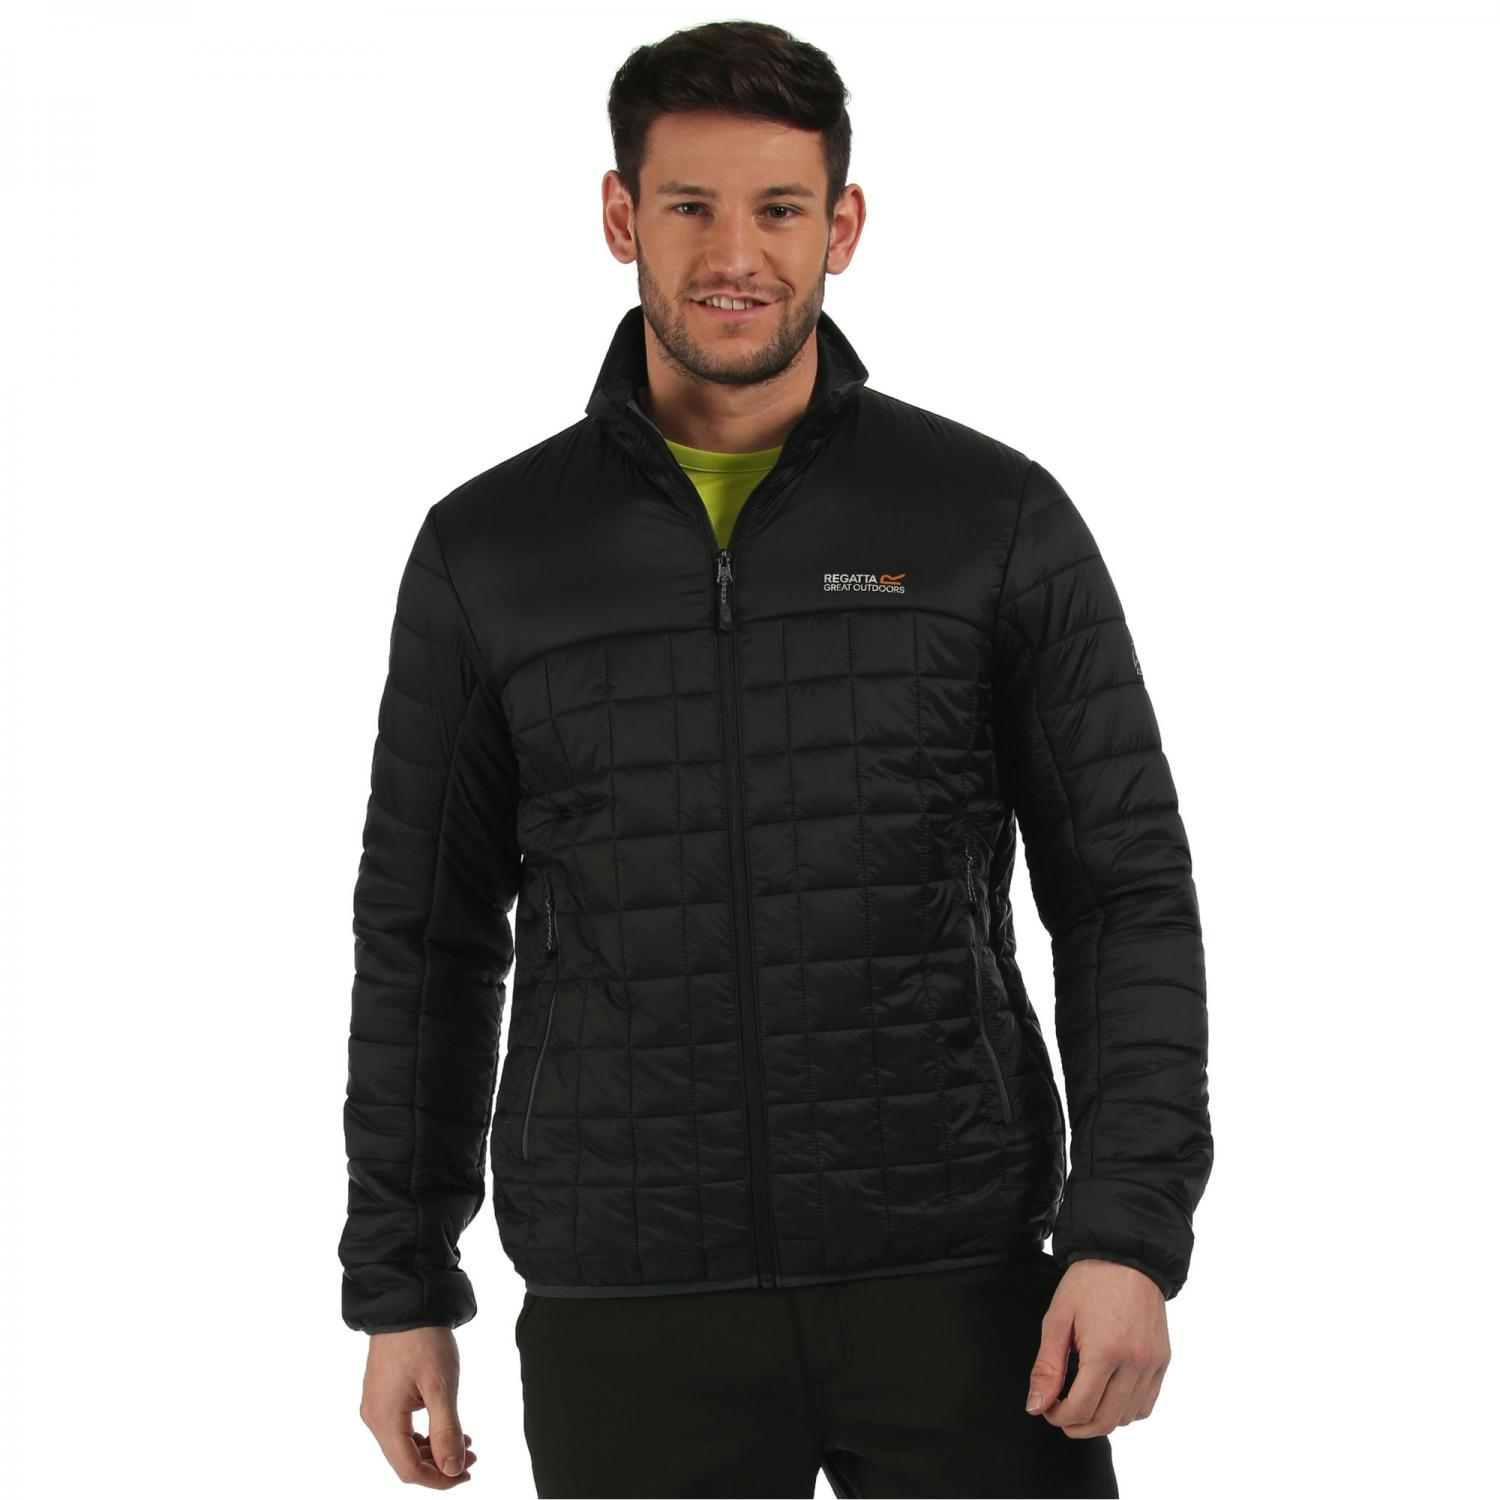 Highfell II Jacket Black